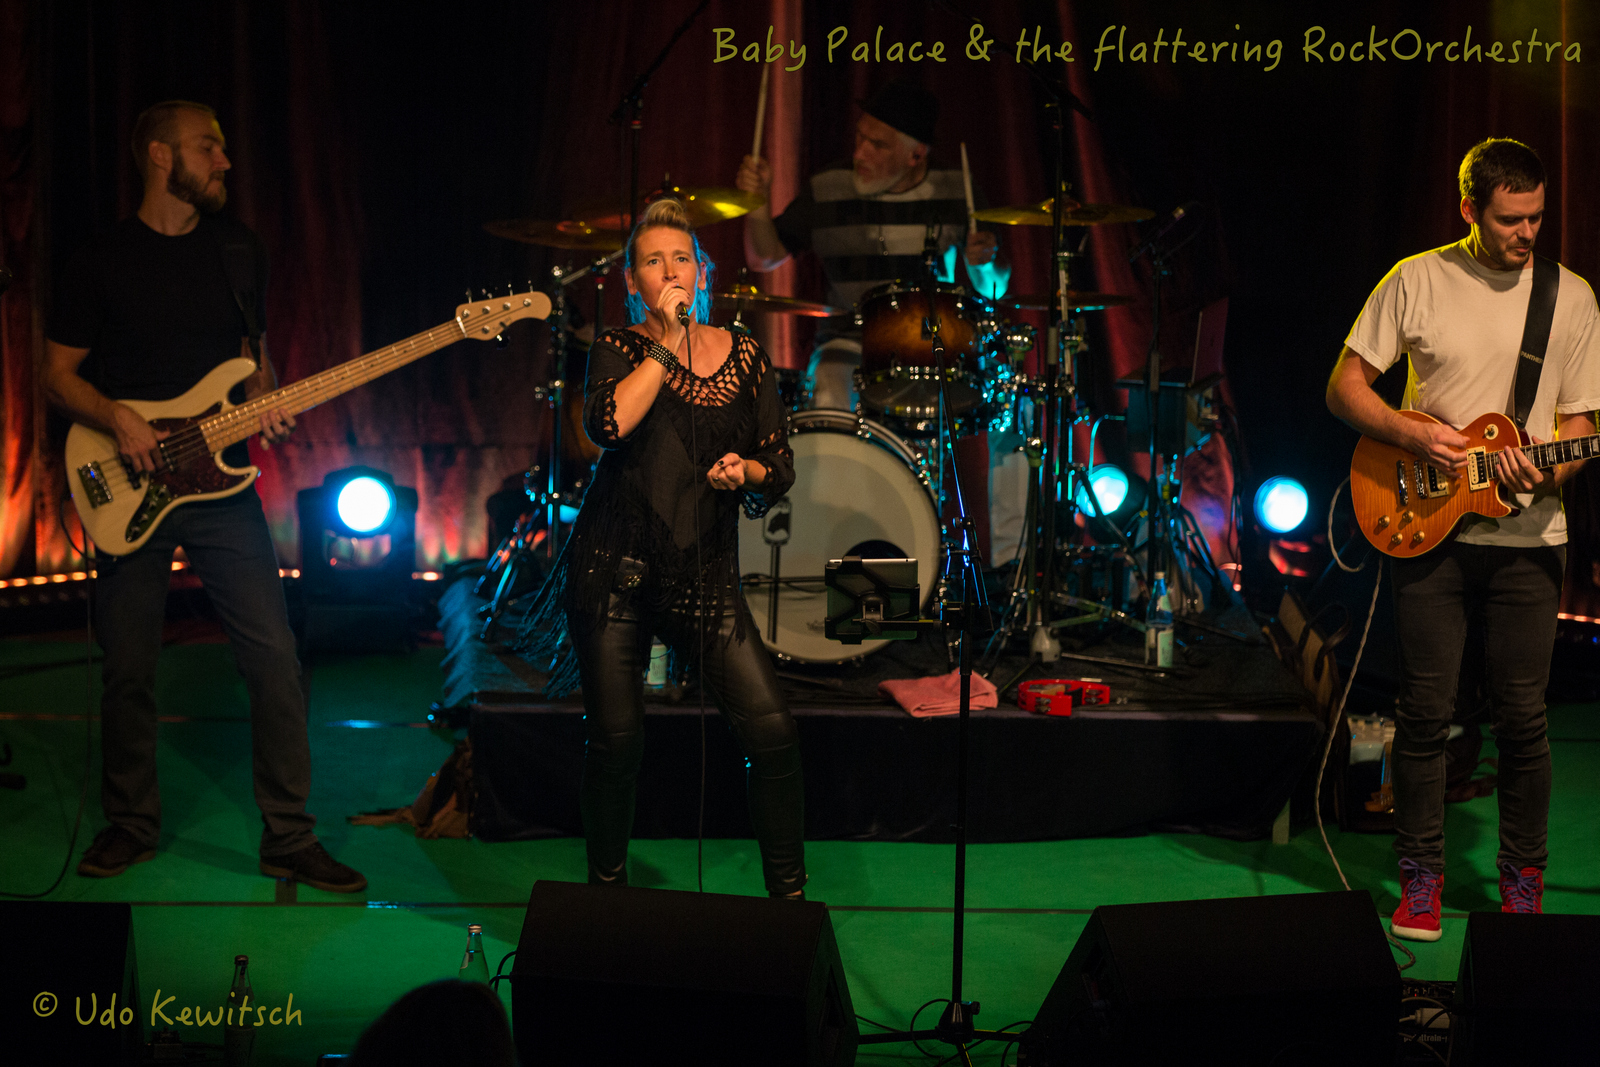 Samstag, 17.10.2020 / 19.30 Uhr – Baby Palace and the flattering Rock Orchestra